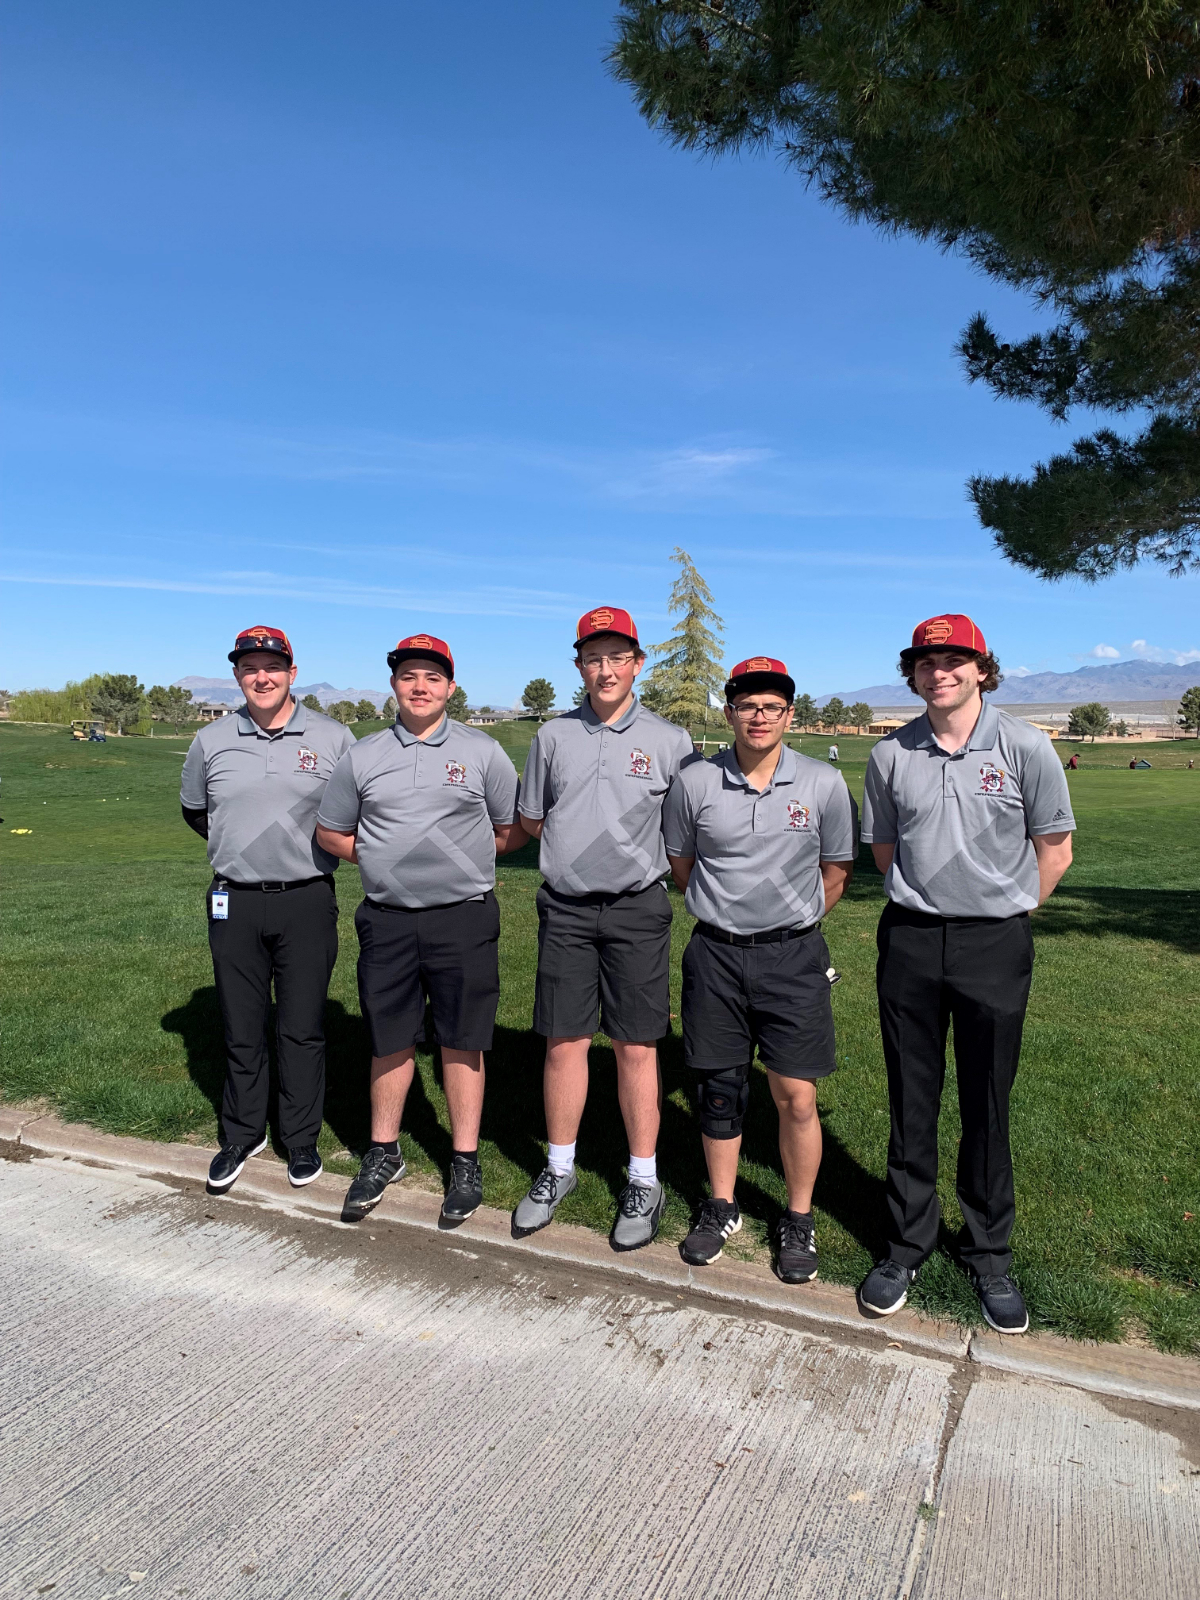 DSA Boy's Golf is Excited to Use This Season to Grow and Improve as a Team